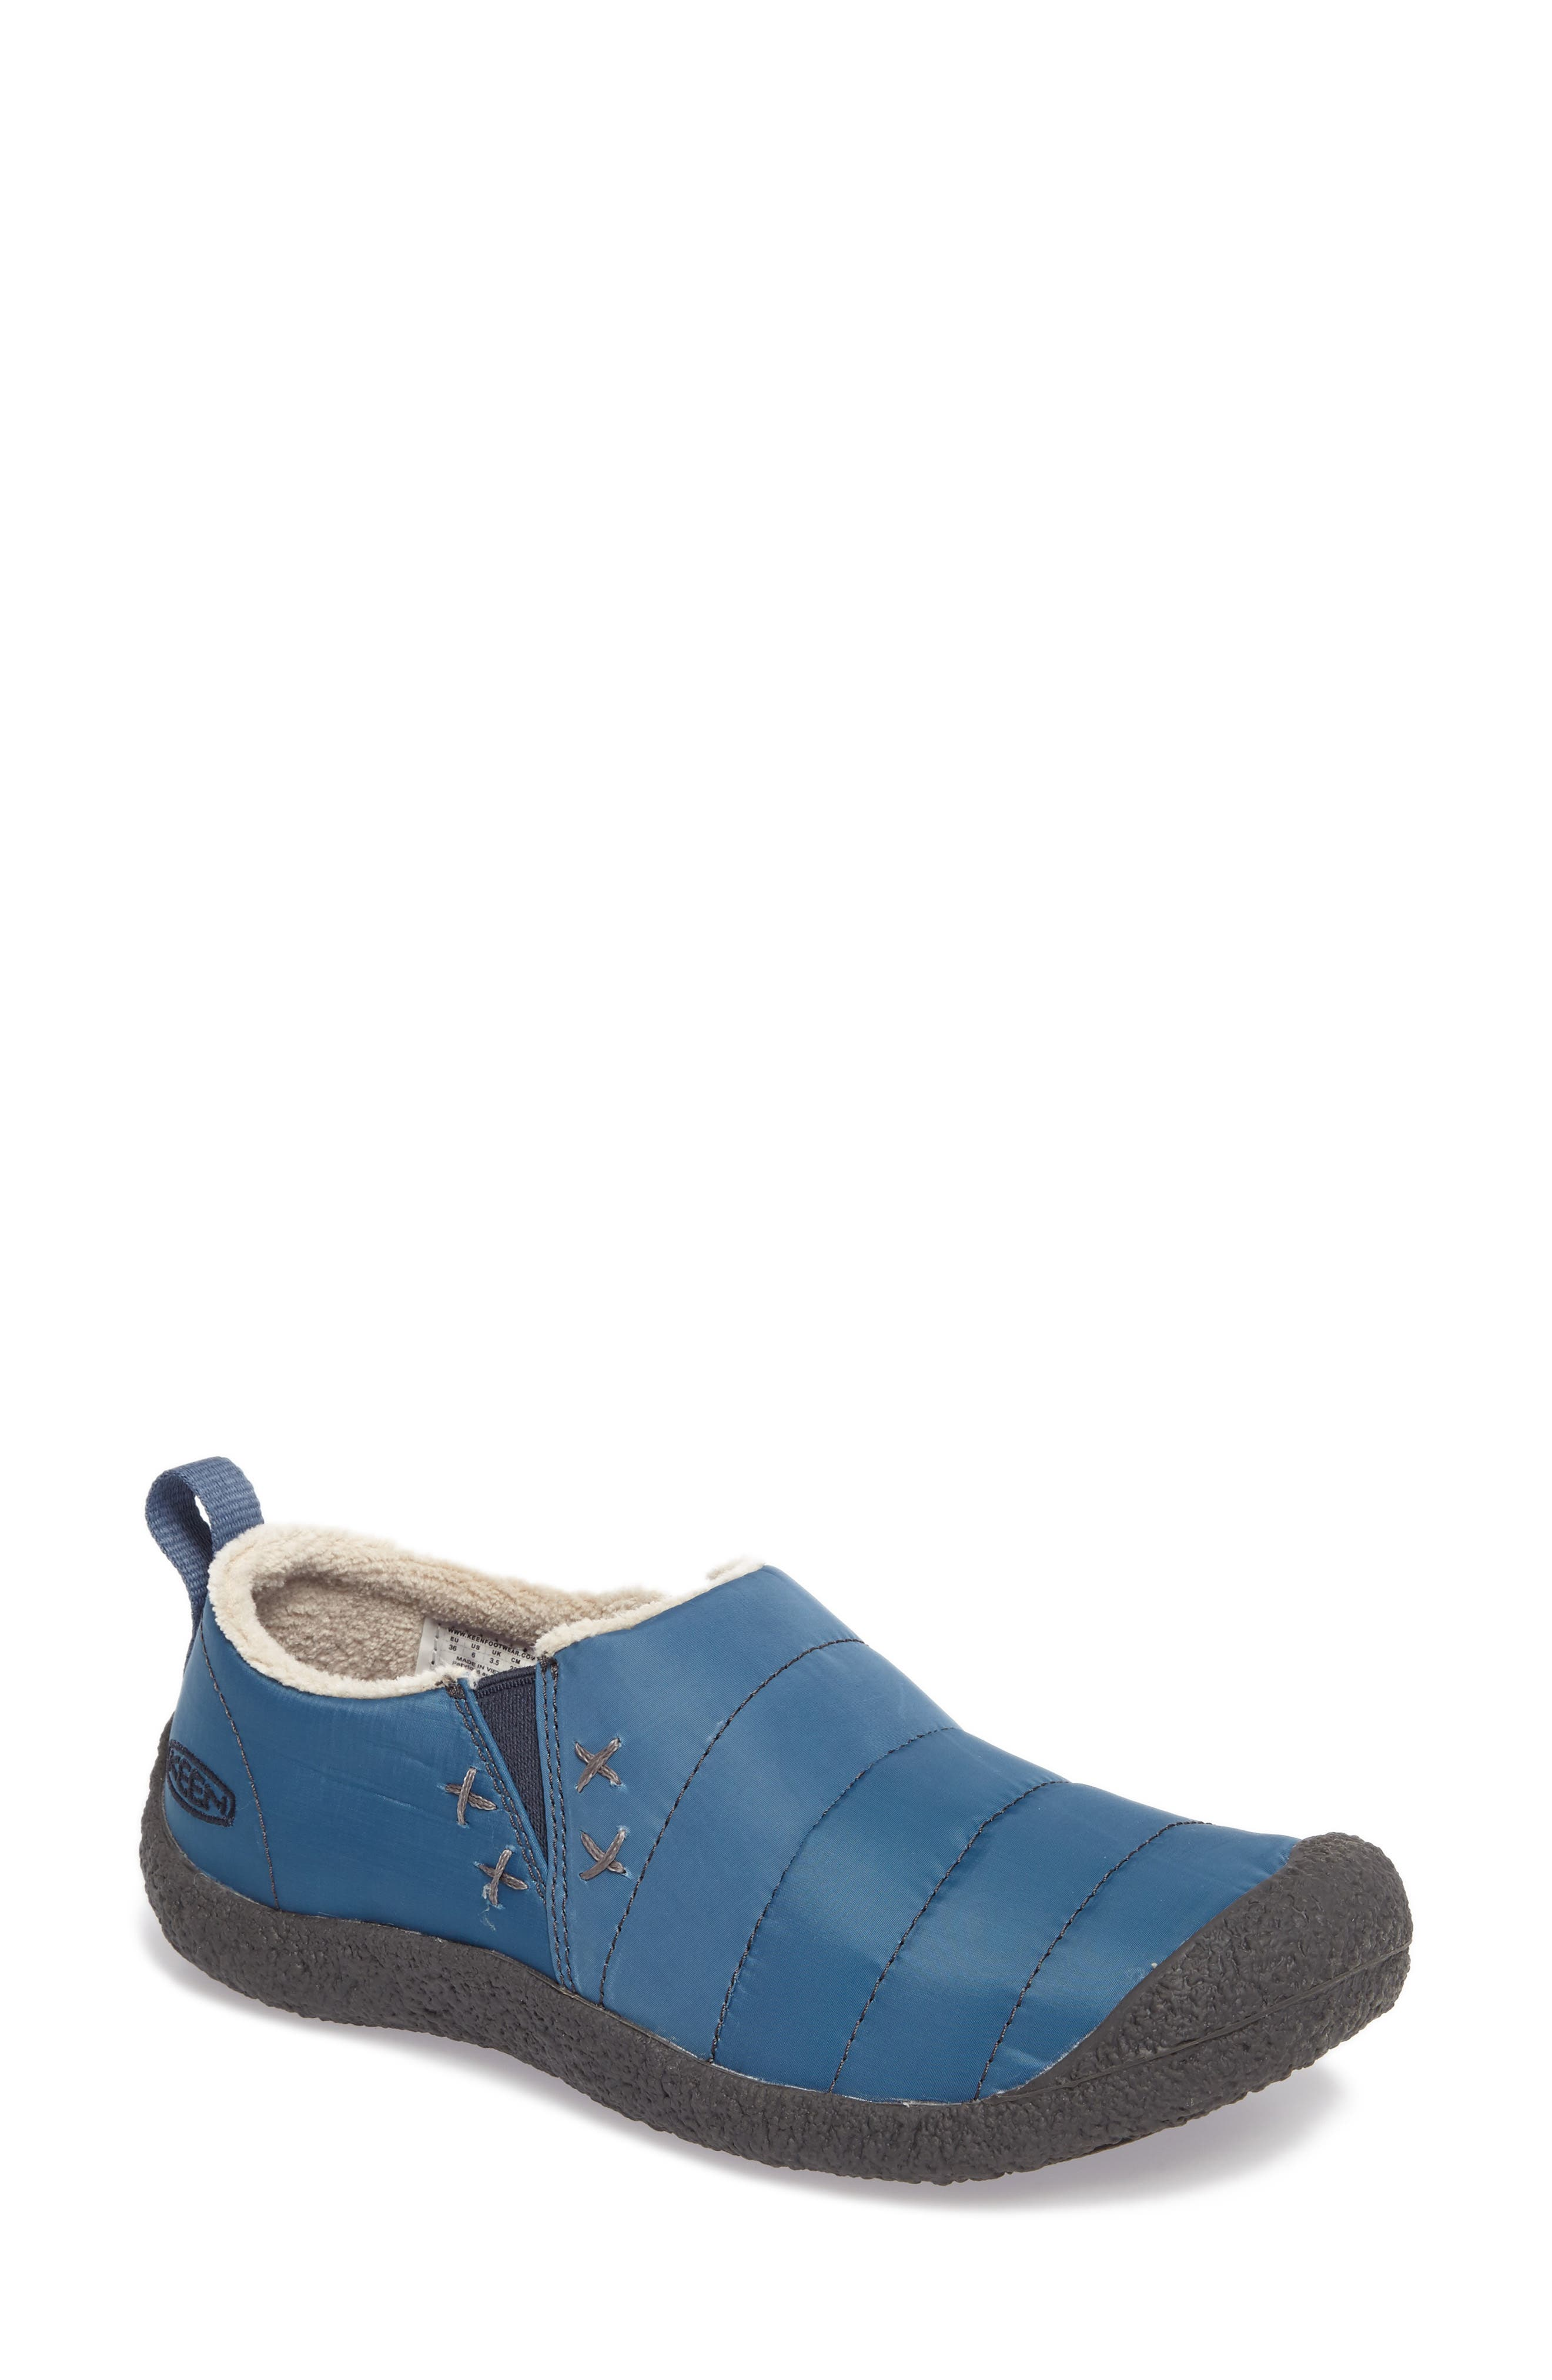 Howser II Water-Resistant Round Toe Clog,                             Main thumbnail 1, color,                             400